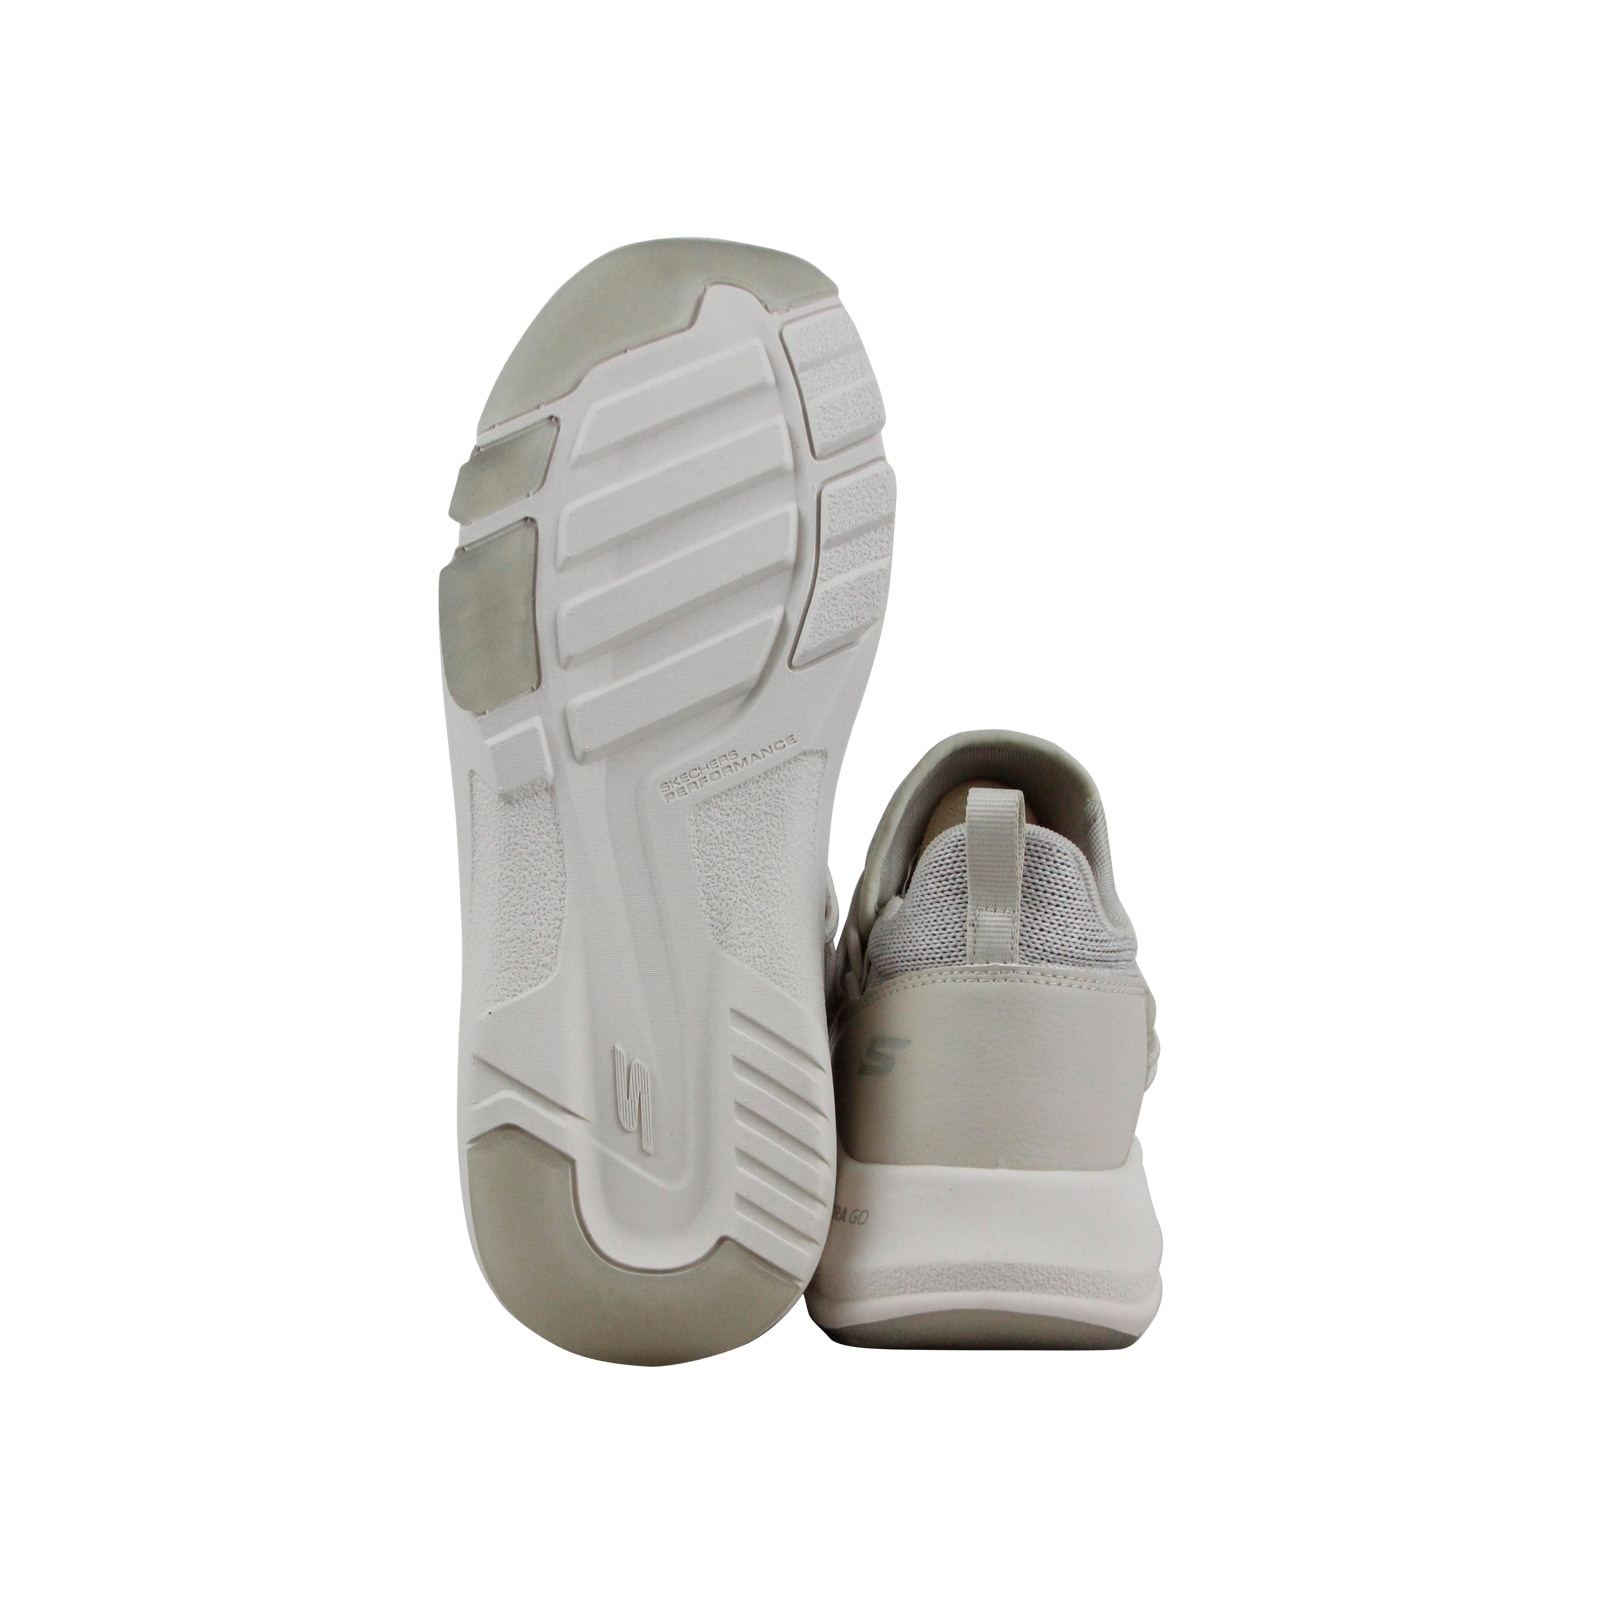 7eb8ff4beb91 Shop Skechers One Element Ultra Atomic Womens Beige Athletic Training Shoes  - Free Shipping On Orders Over  45 - Overstock - 23601618